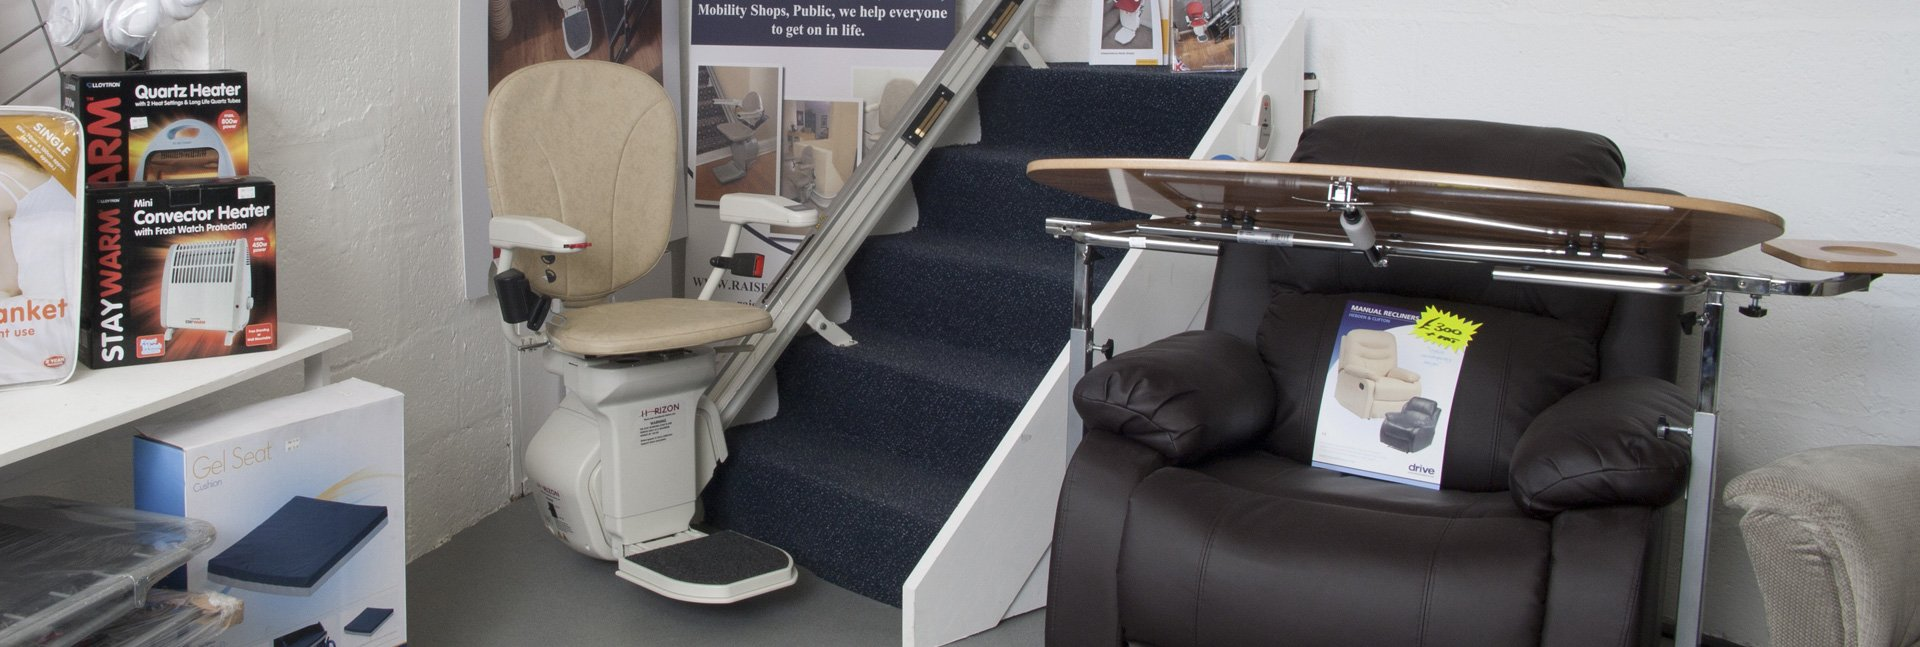 Stairlift usage demo